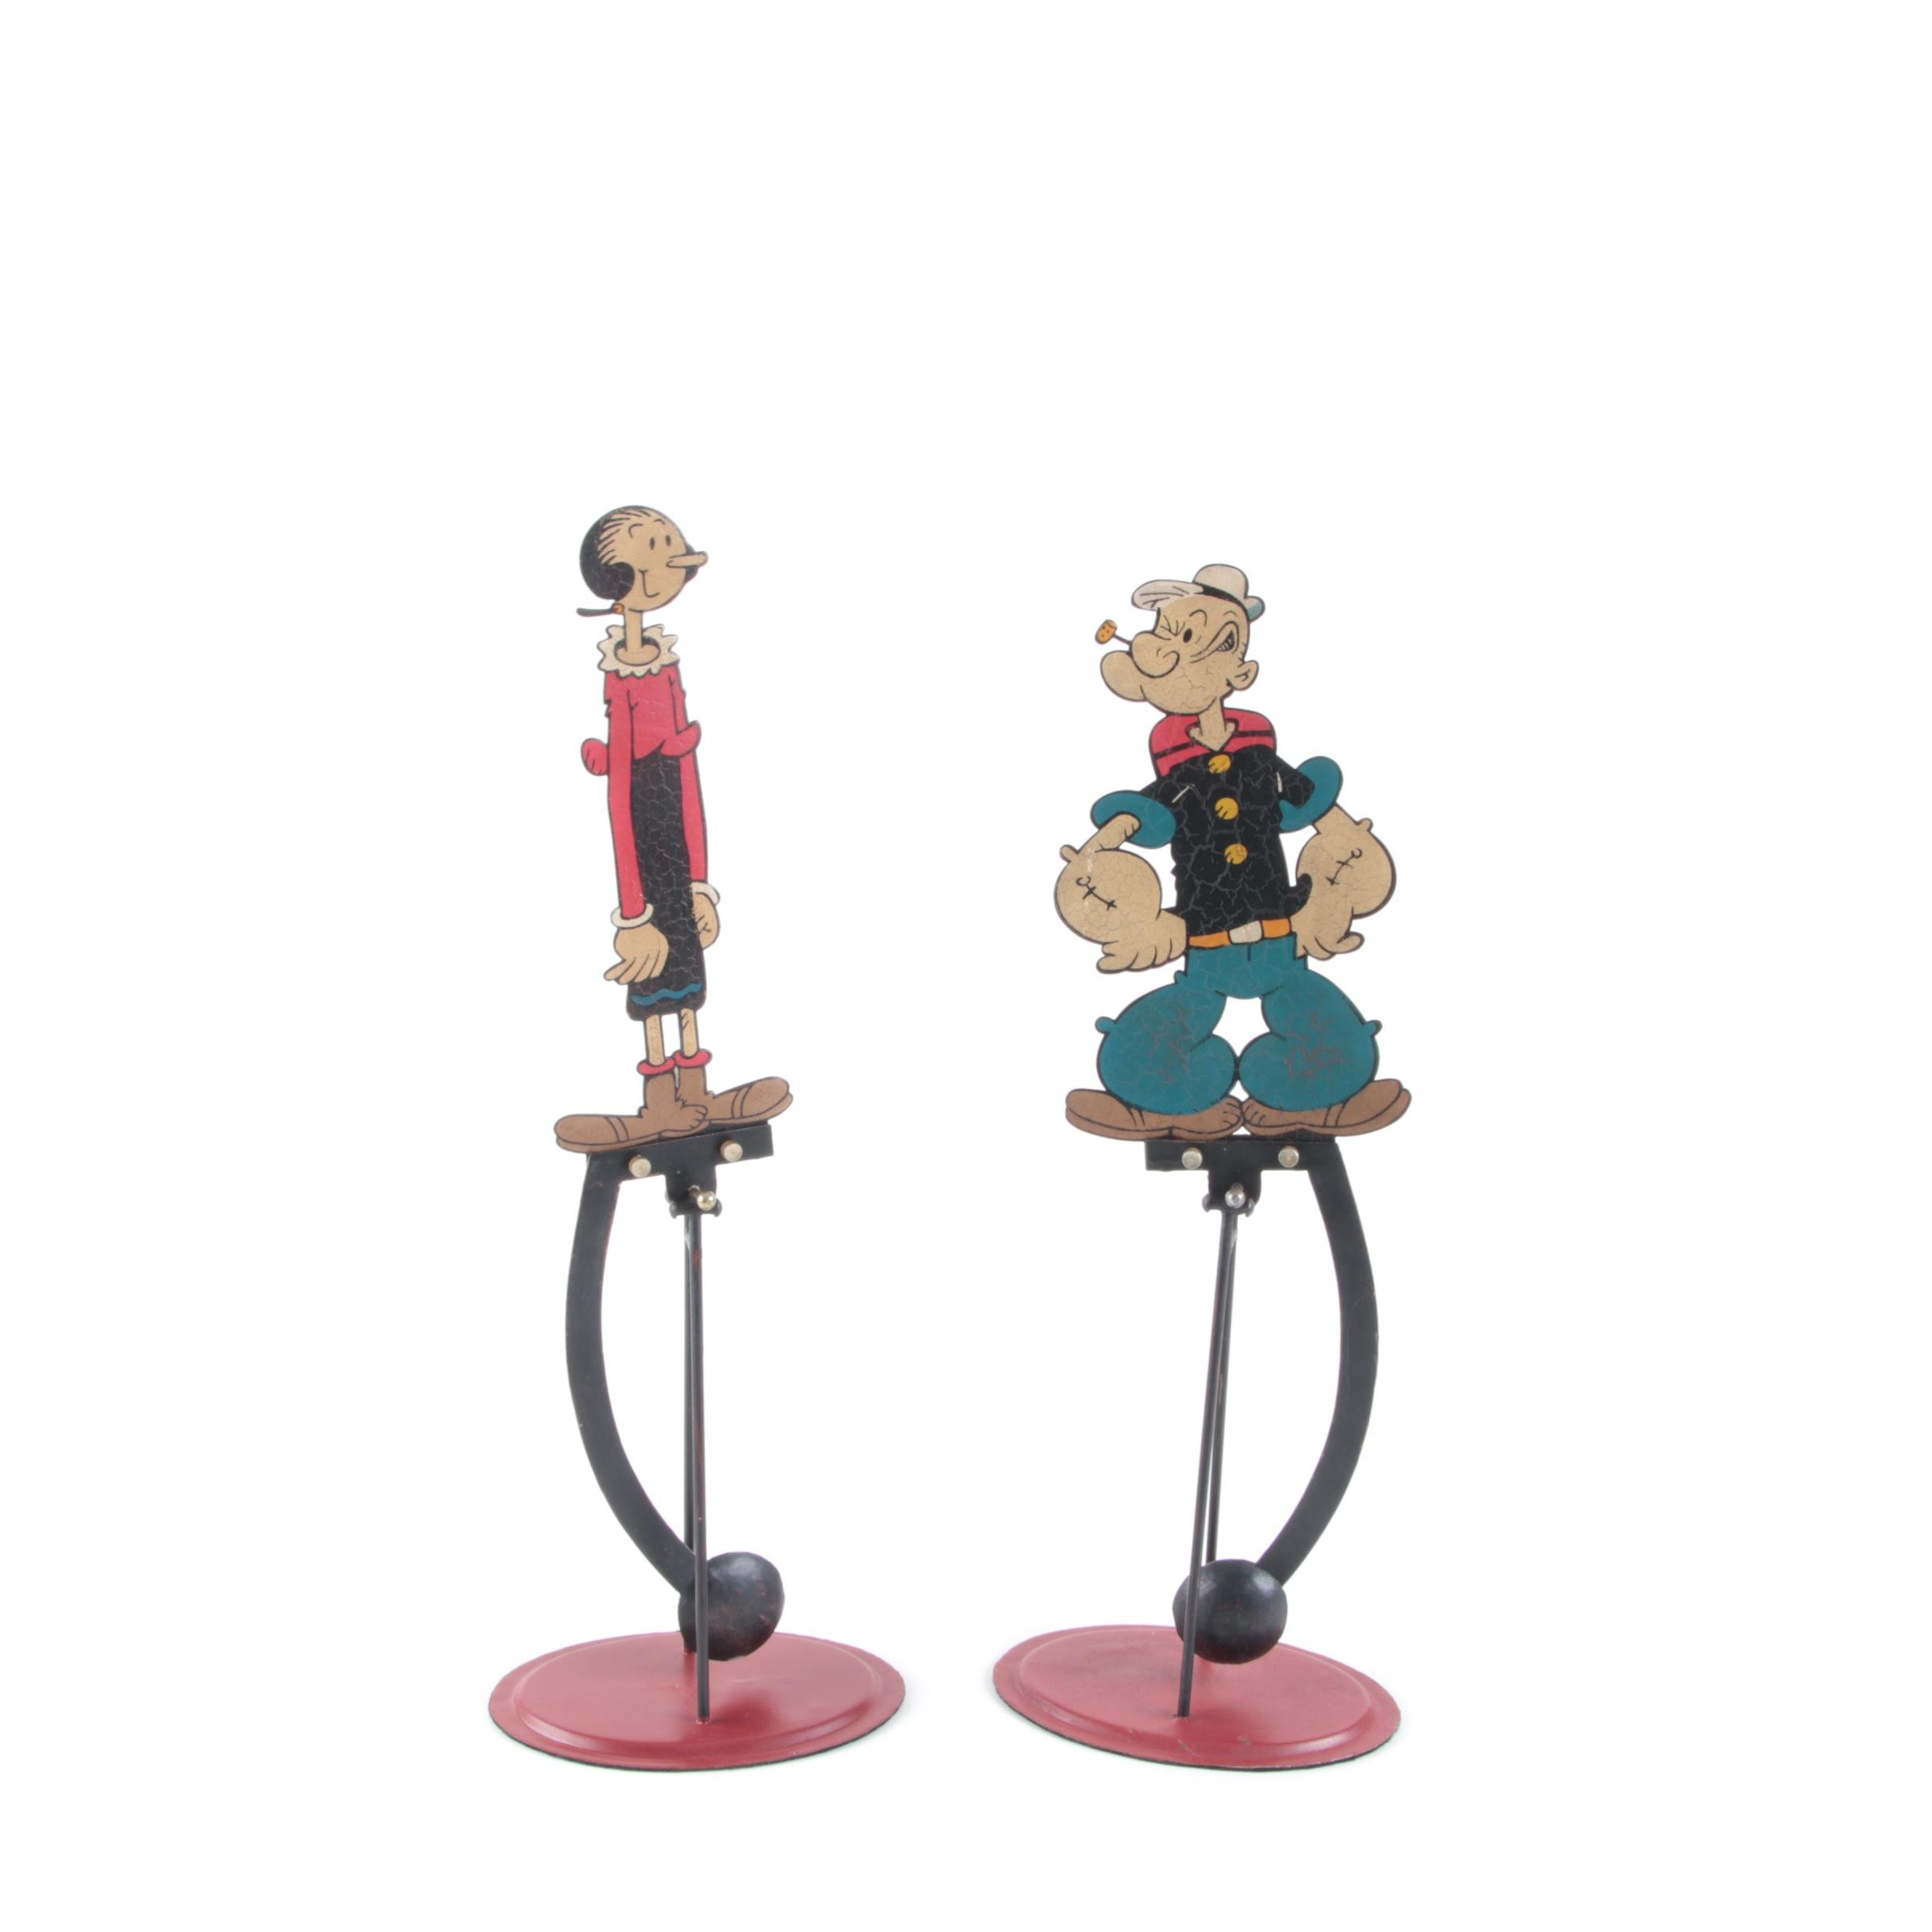 1999 Popeye and Olive Oyl Metal Motion Figurines from King Features